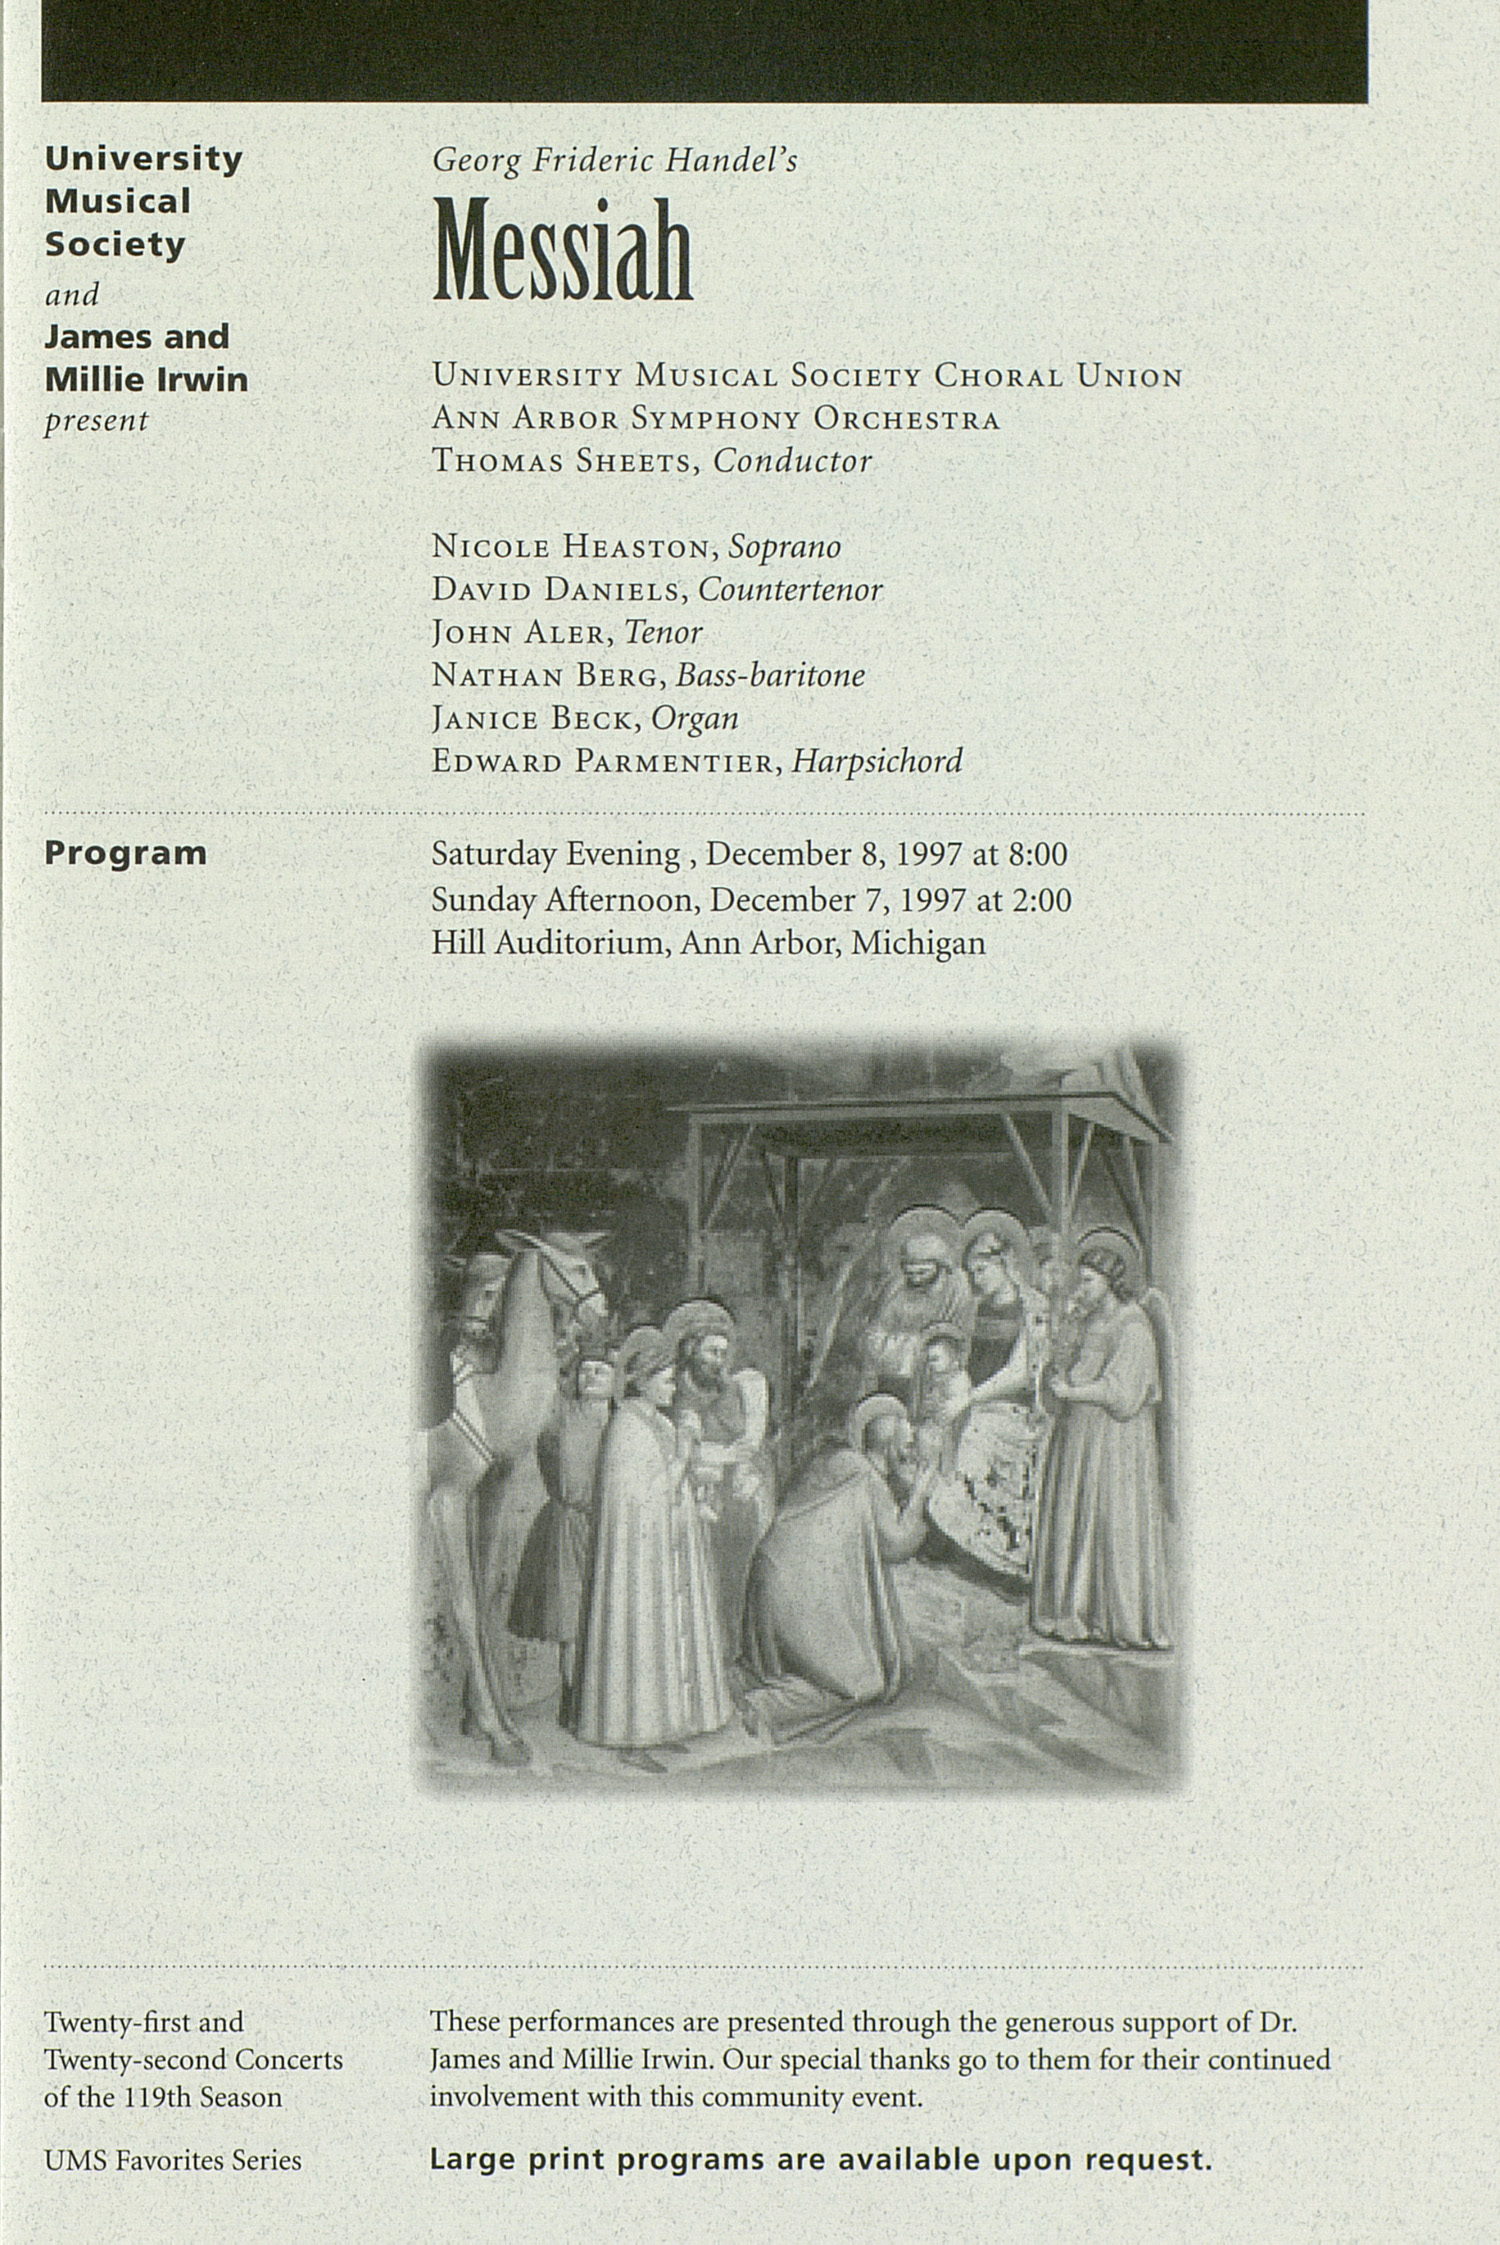 UMS Concert Program, Tuesday Dec. 02 To 14: University Musical Society: 1997-1998 Fall - Tuesday Dec. 02 To 14 --  image